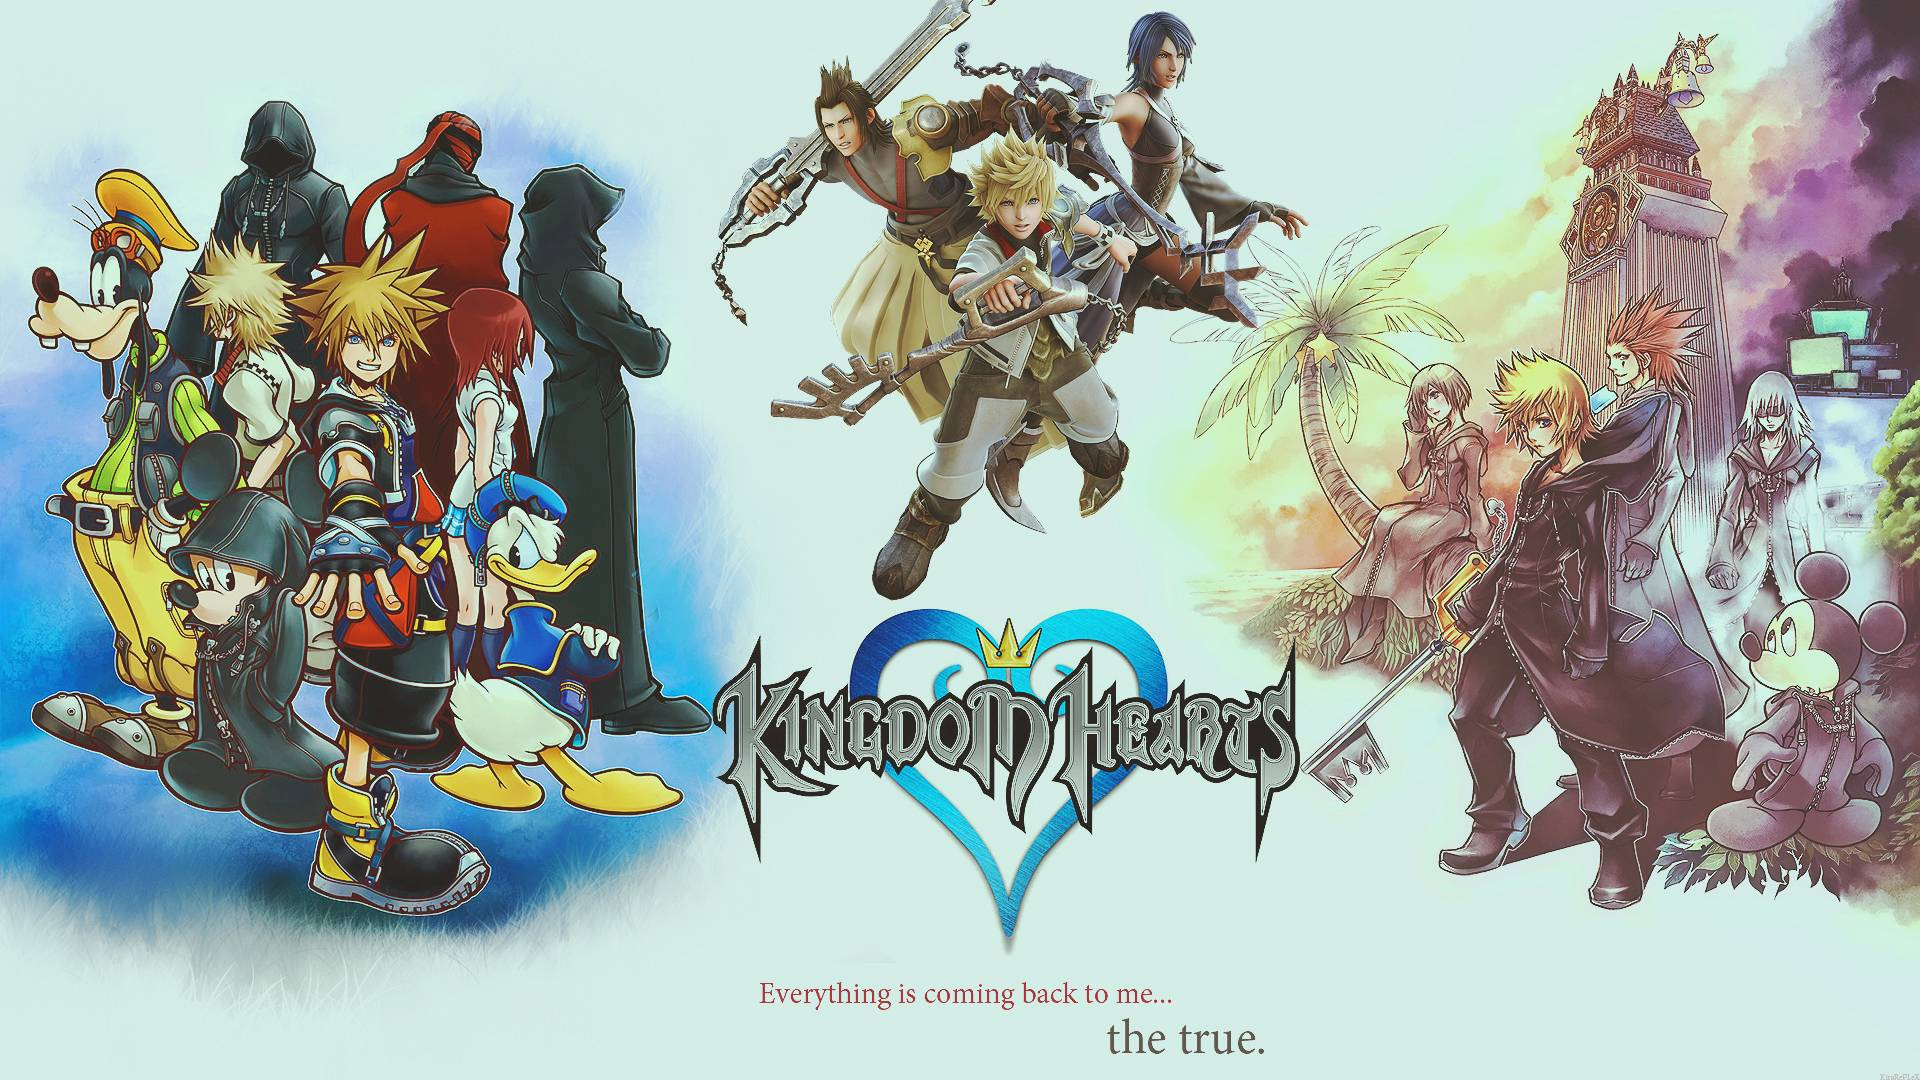 kingdom hearts background - photo #7